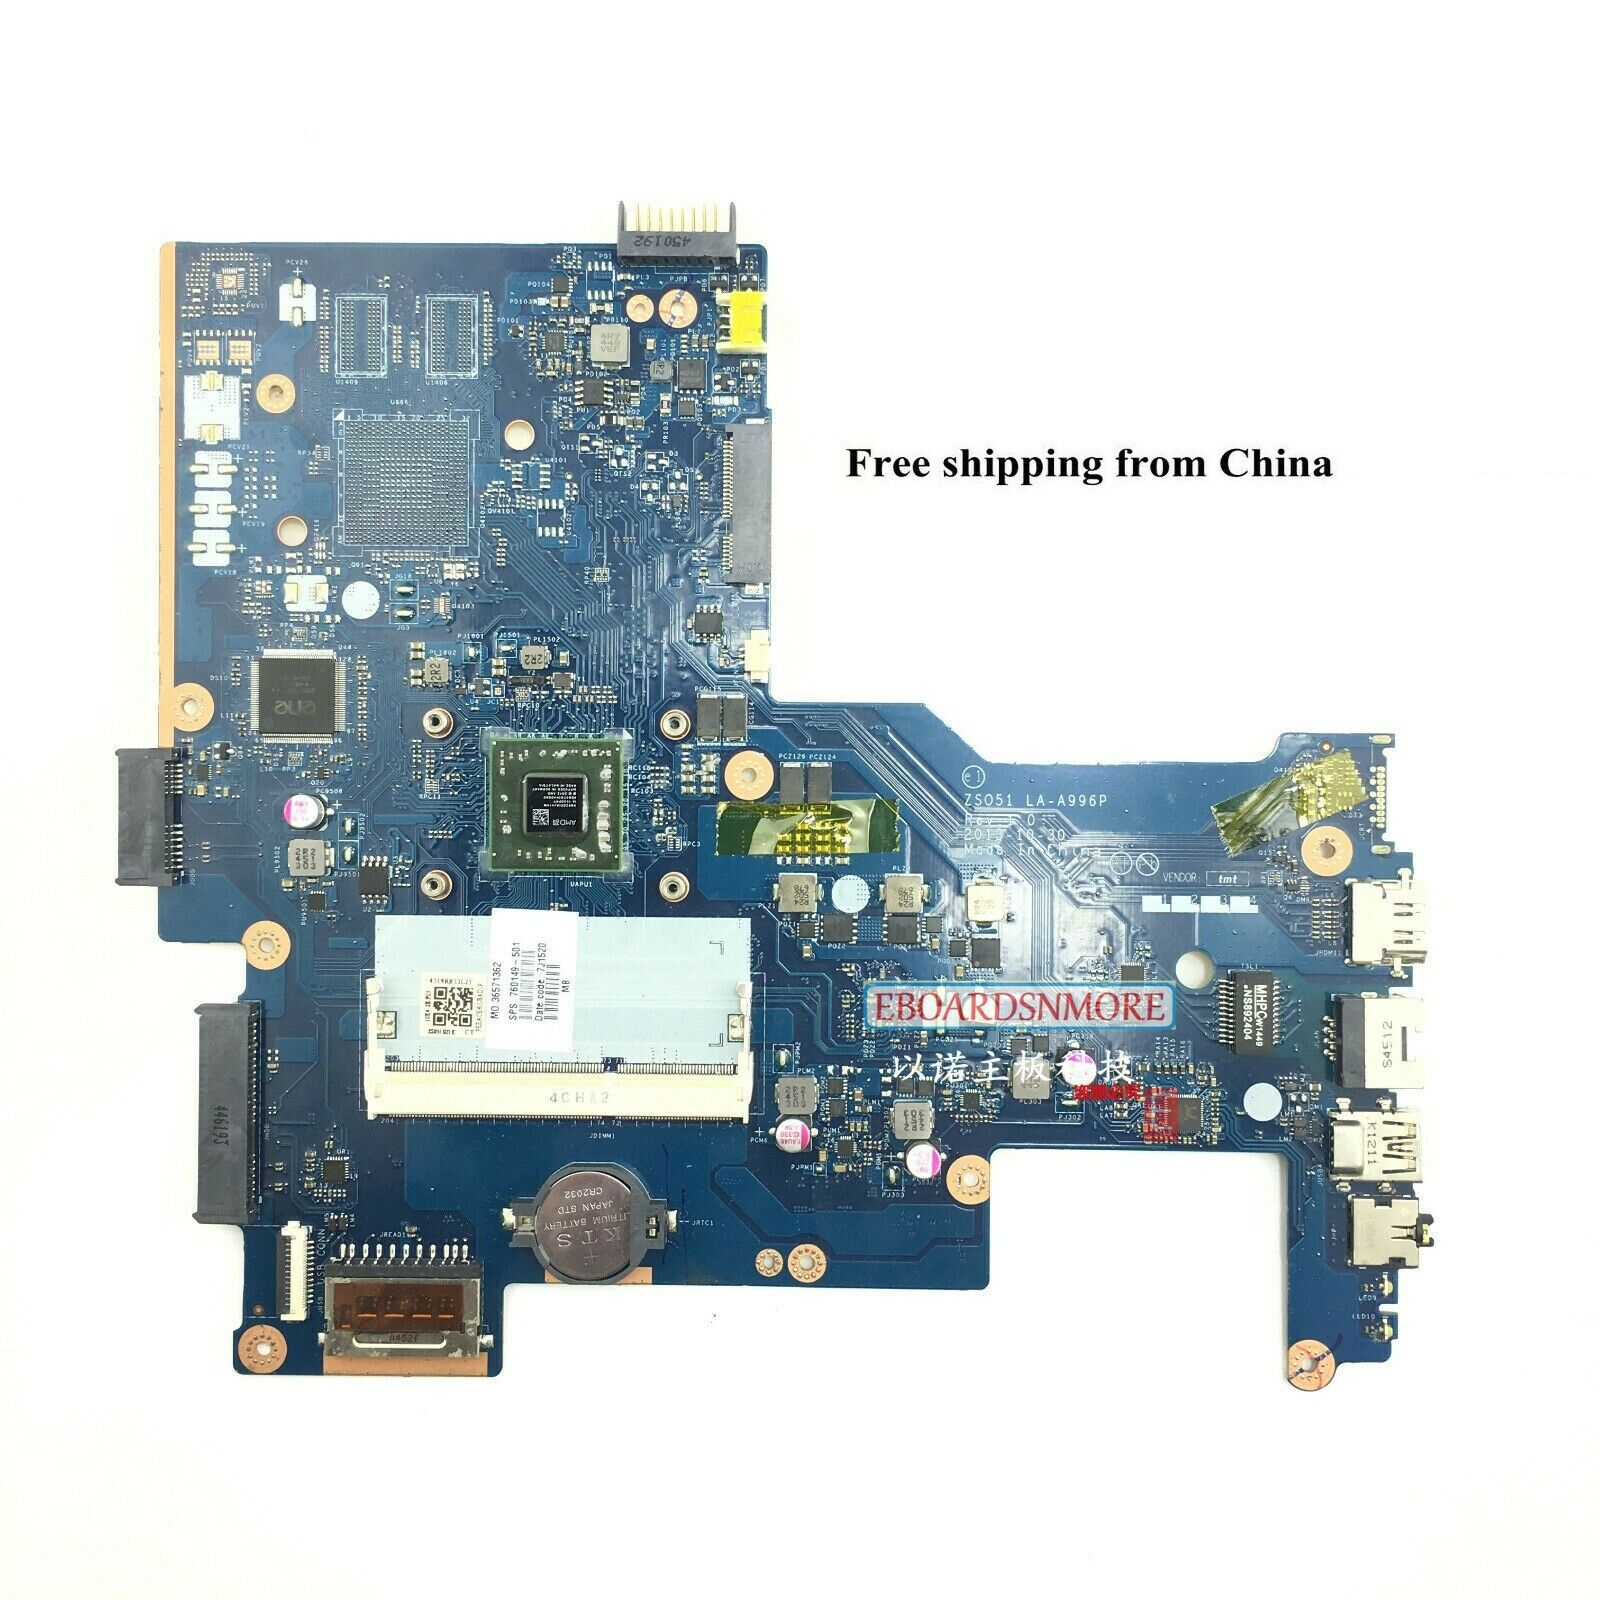 FMB-I Compatible with 760042-501 Replacement for Hp AMD Socket Fs1 Motherboard M6-N010DX